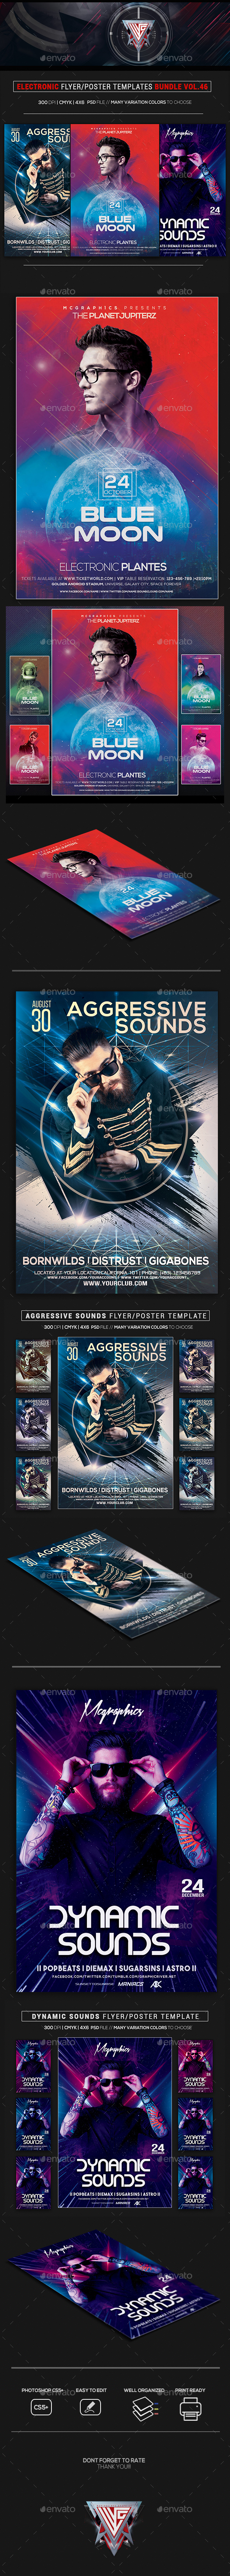 Electro Music Flyer/Instagram Bundle Vol. 46 - Flyers Print Templates